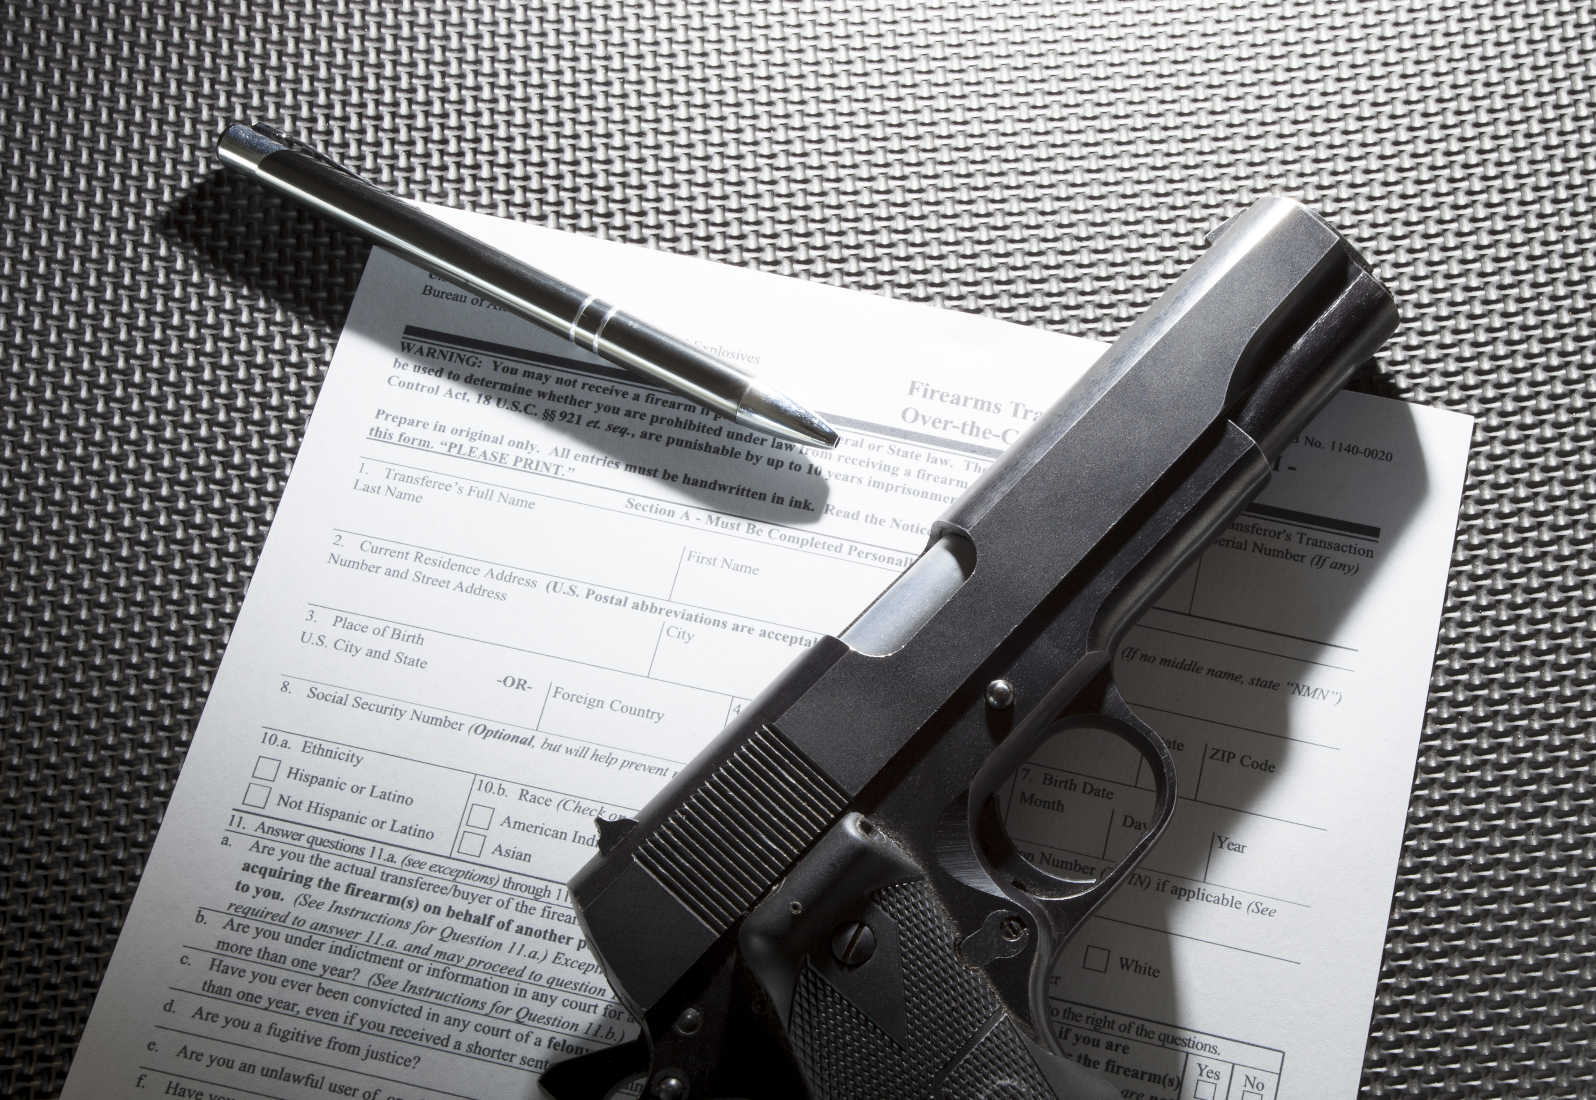 The Ultimate Guide to Debating Gun Control: Are Background Checks 'Common Sense' Measures That Work?